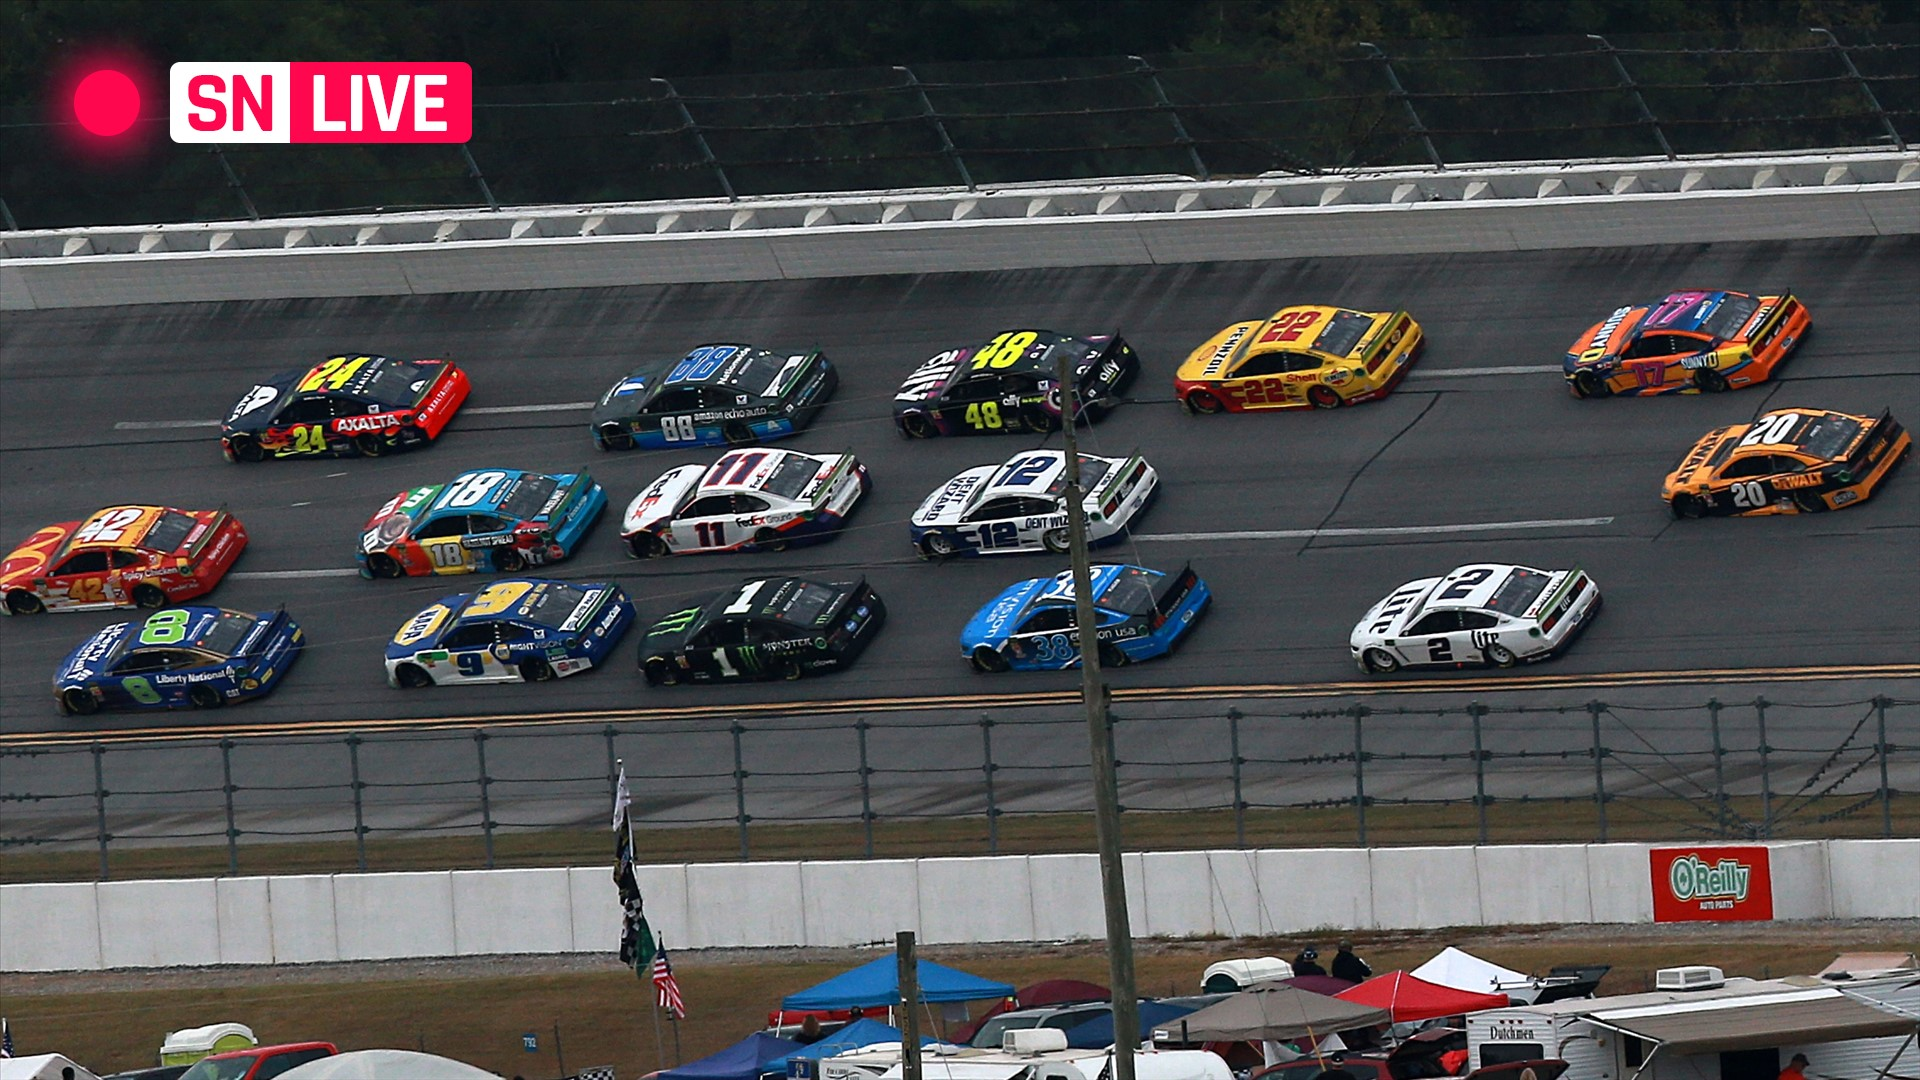 NASCAR at Talladega: Live race updates, results, highlights from Monday's race